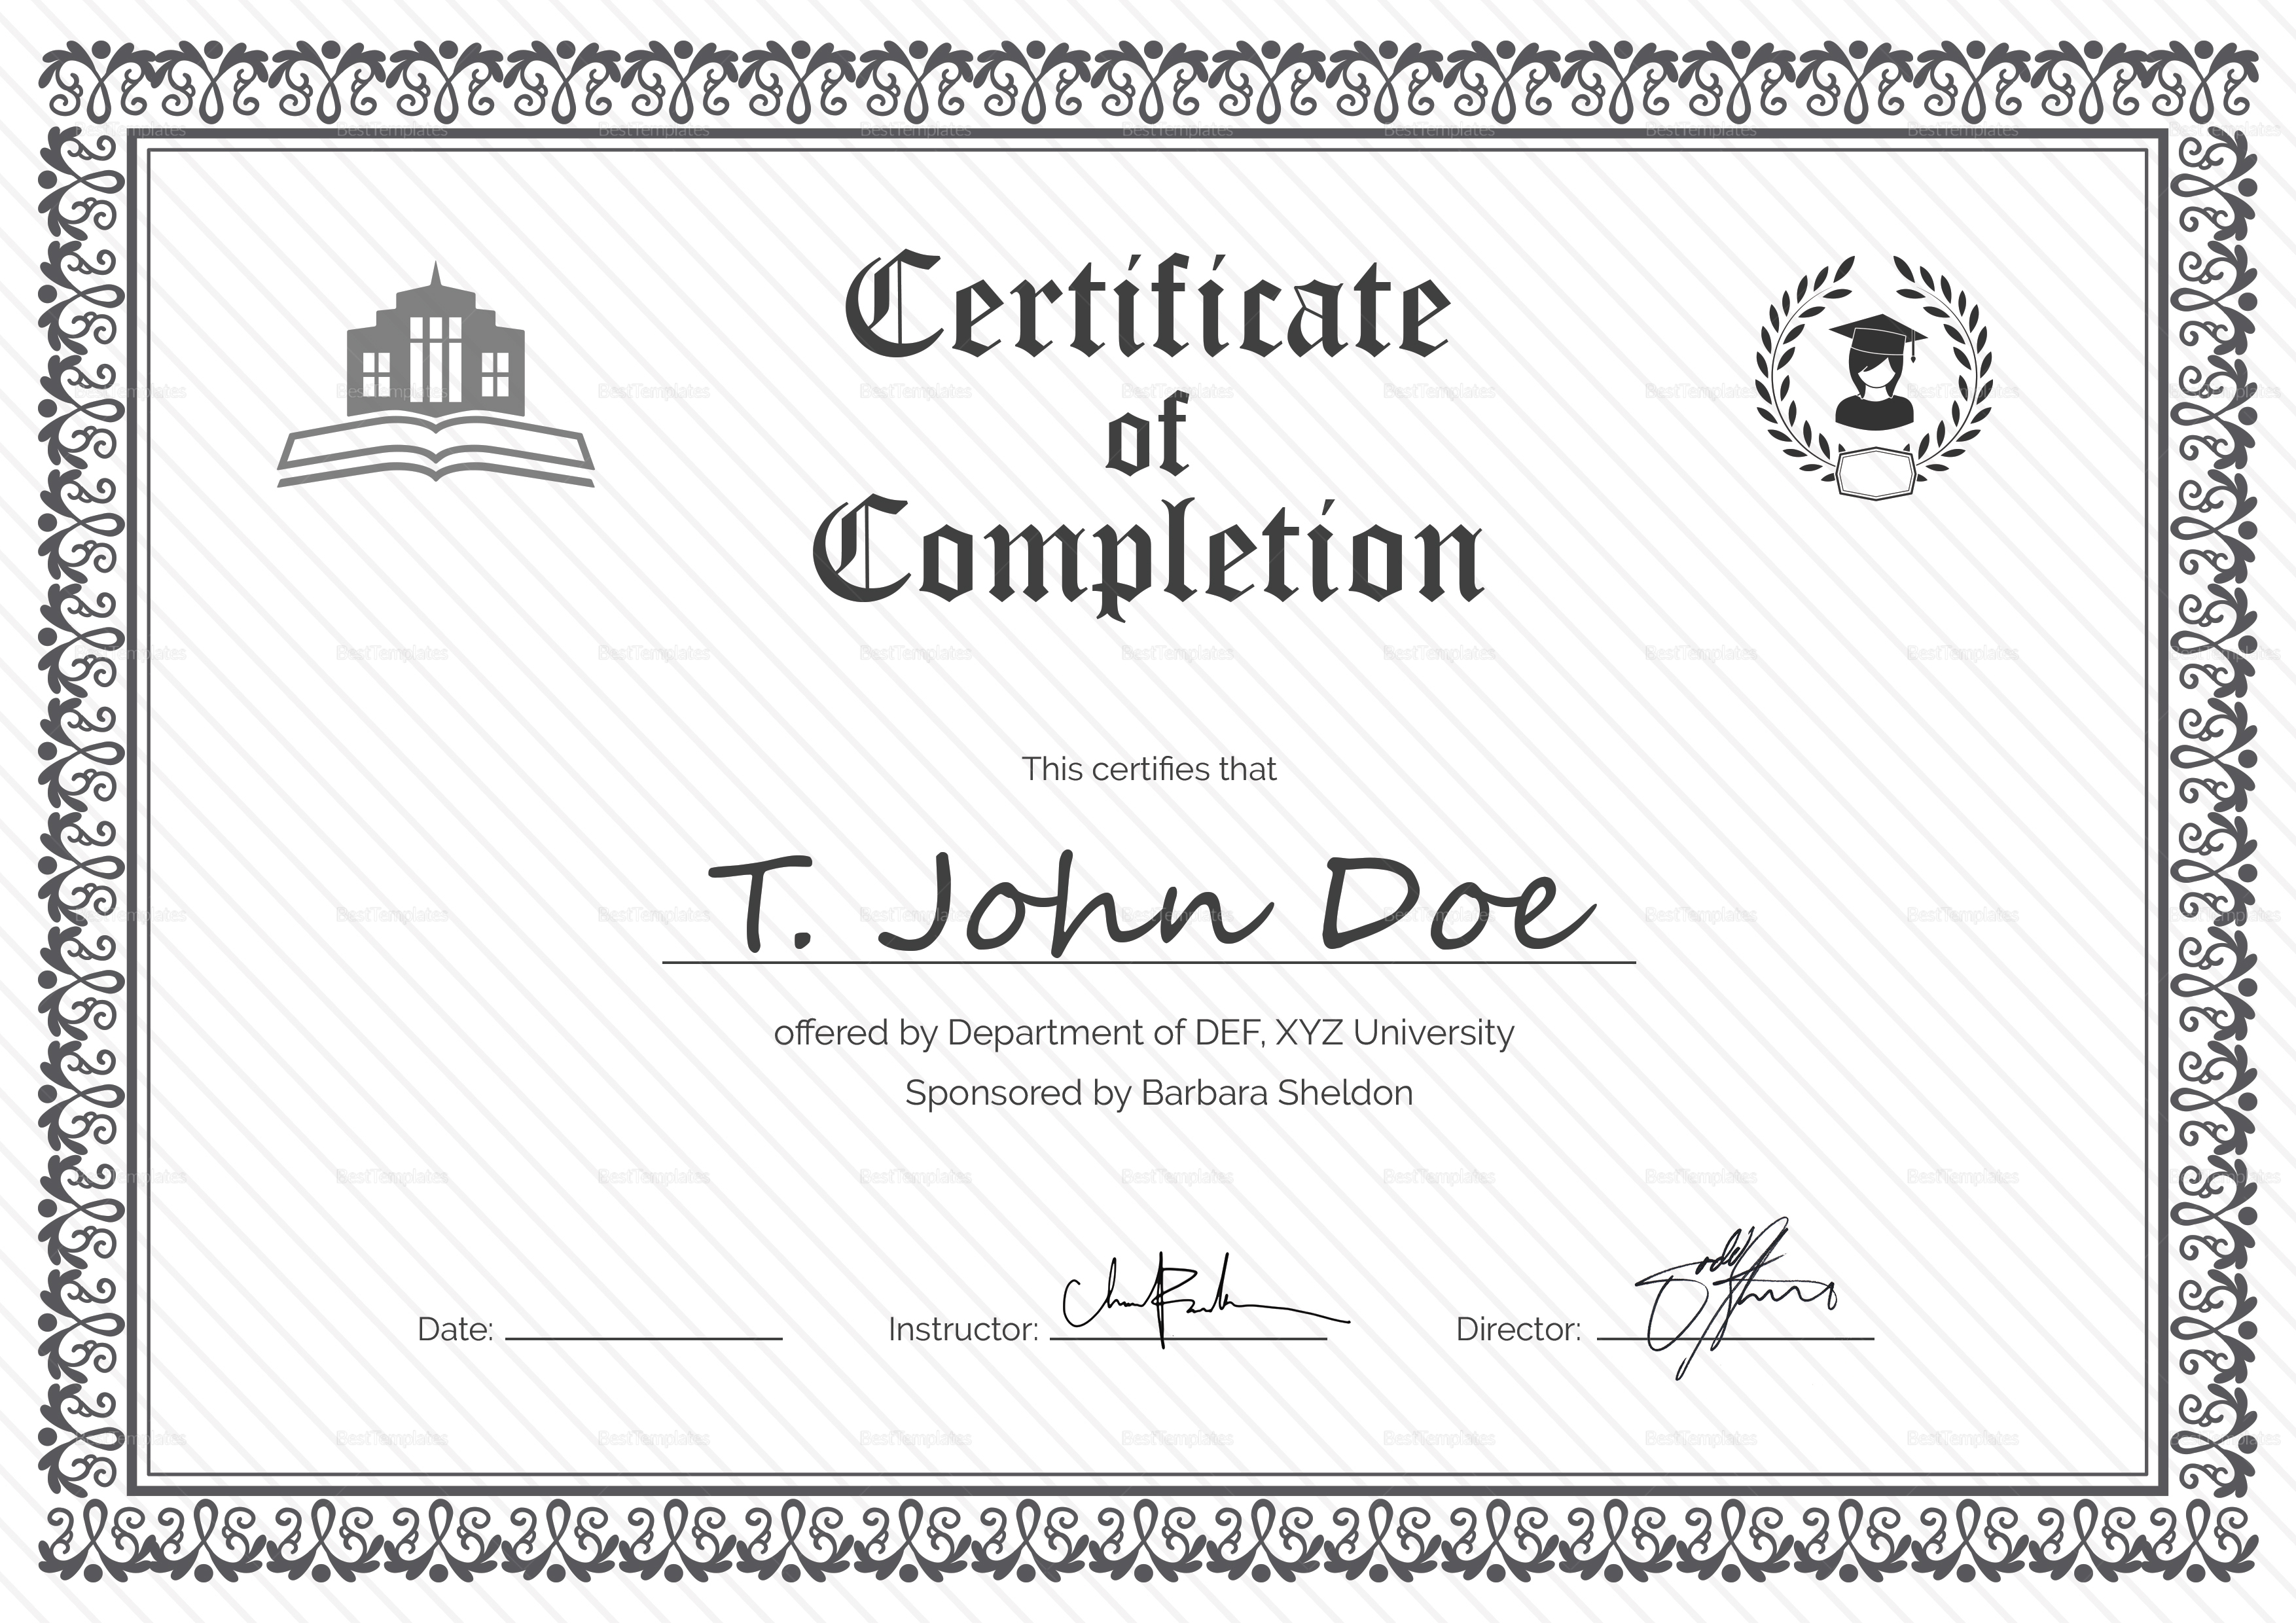 Certificate of completion template word office seating plan certificates of completion templates example of a receipt free certificate of completion eps format281 xflitez Gallery